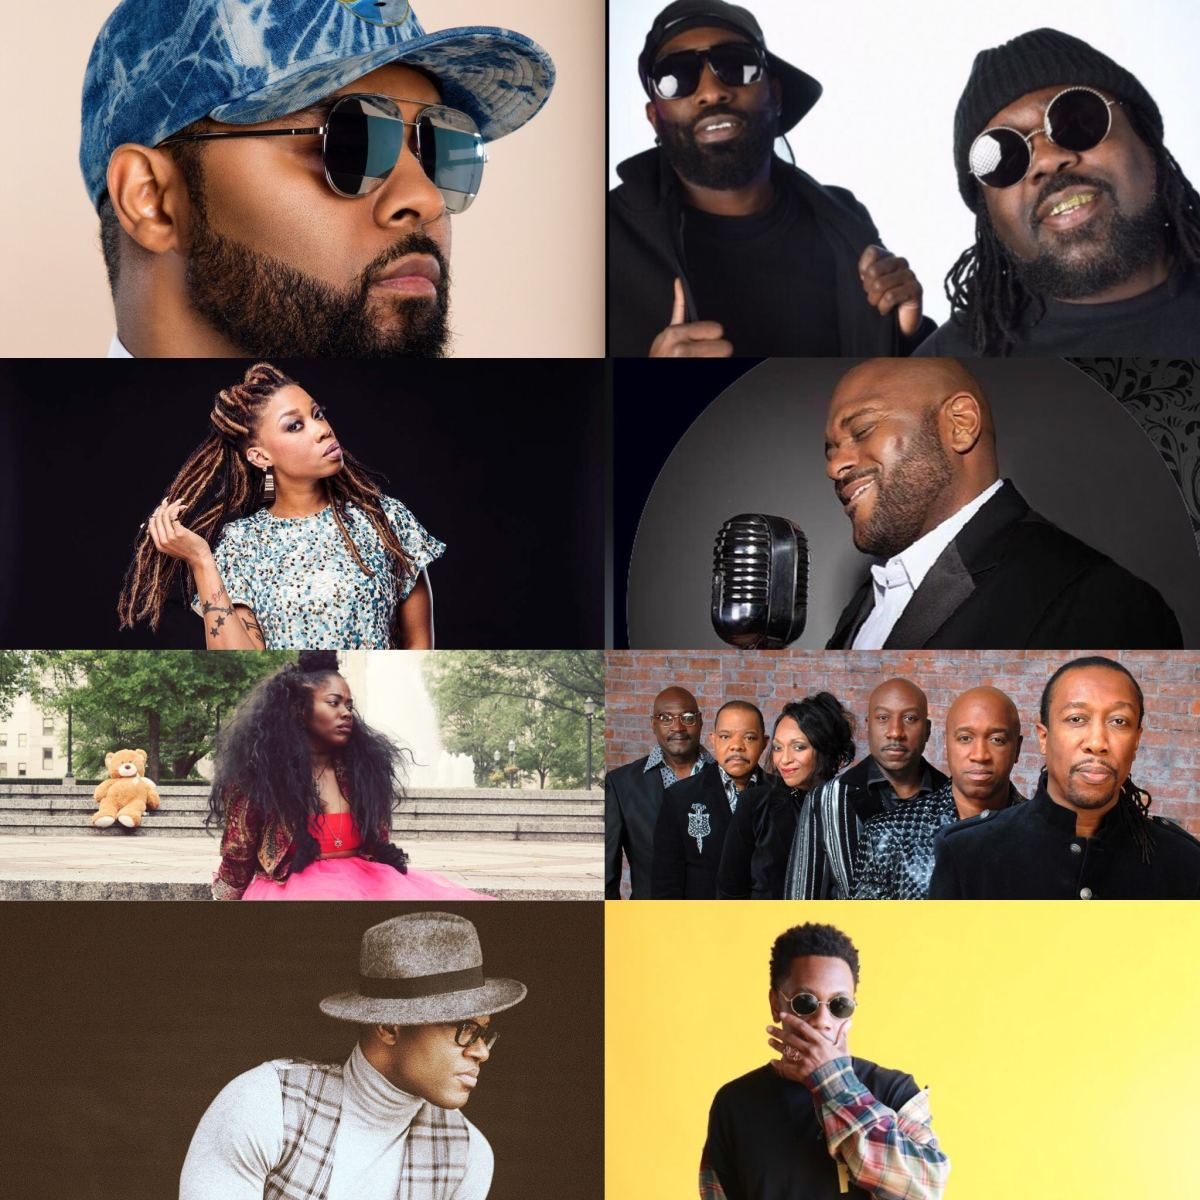 Ultimate guide to Birmingham's Freedom Fest. 12 acts. 'Funnymaine', American Idol's Ruben Studdard and more